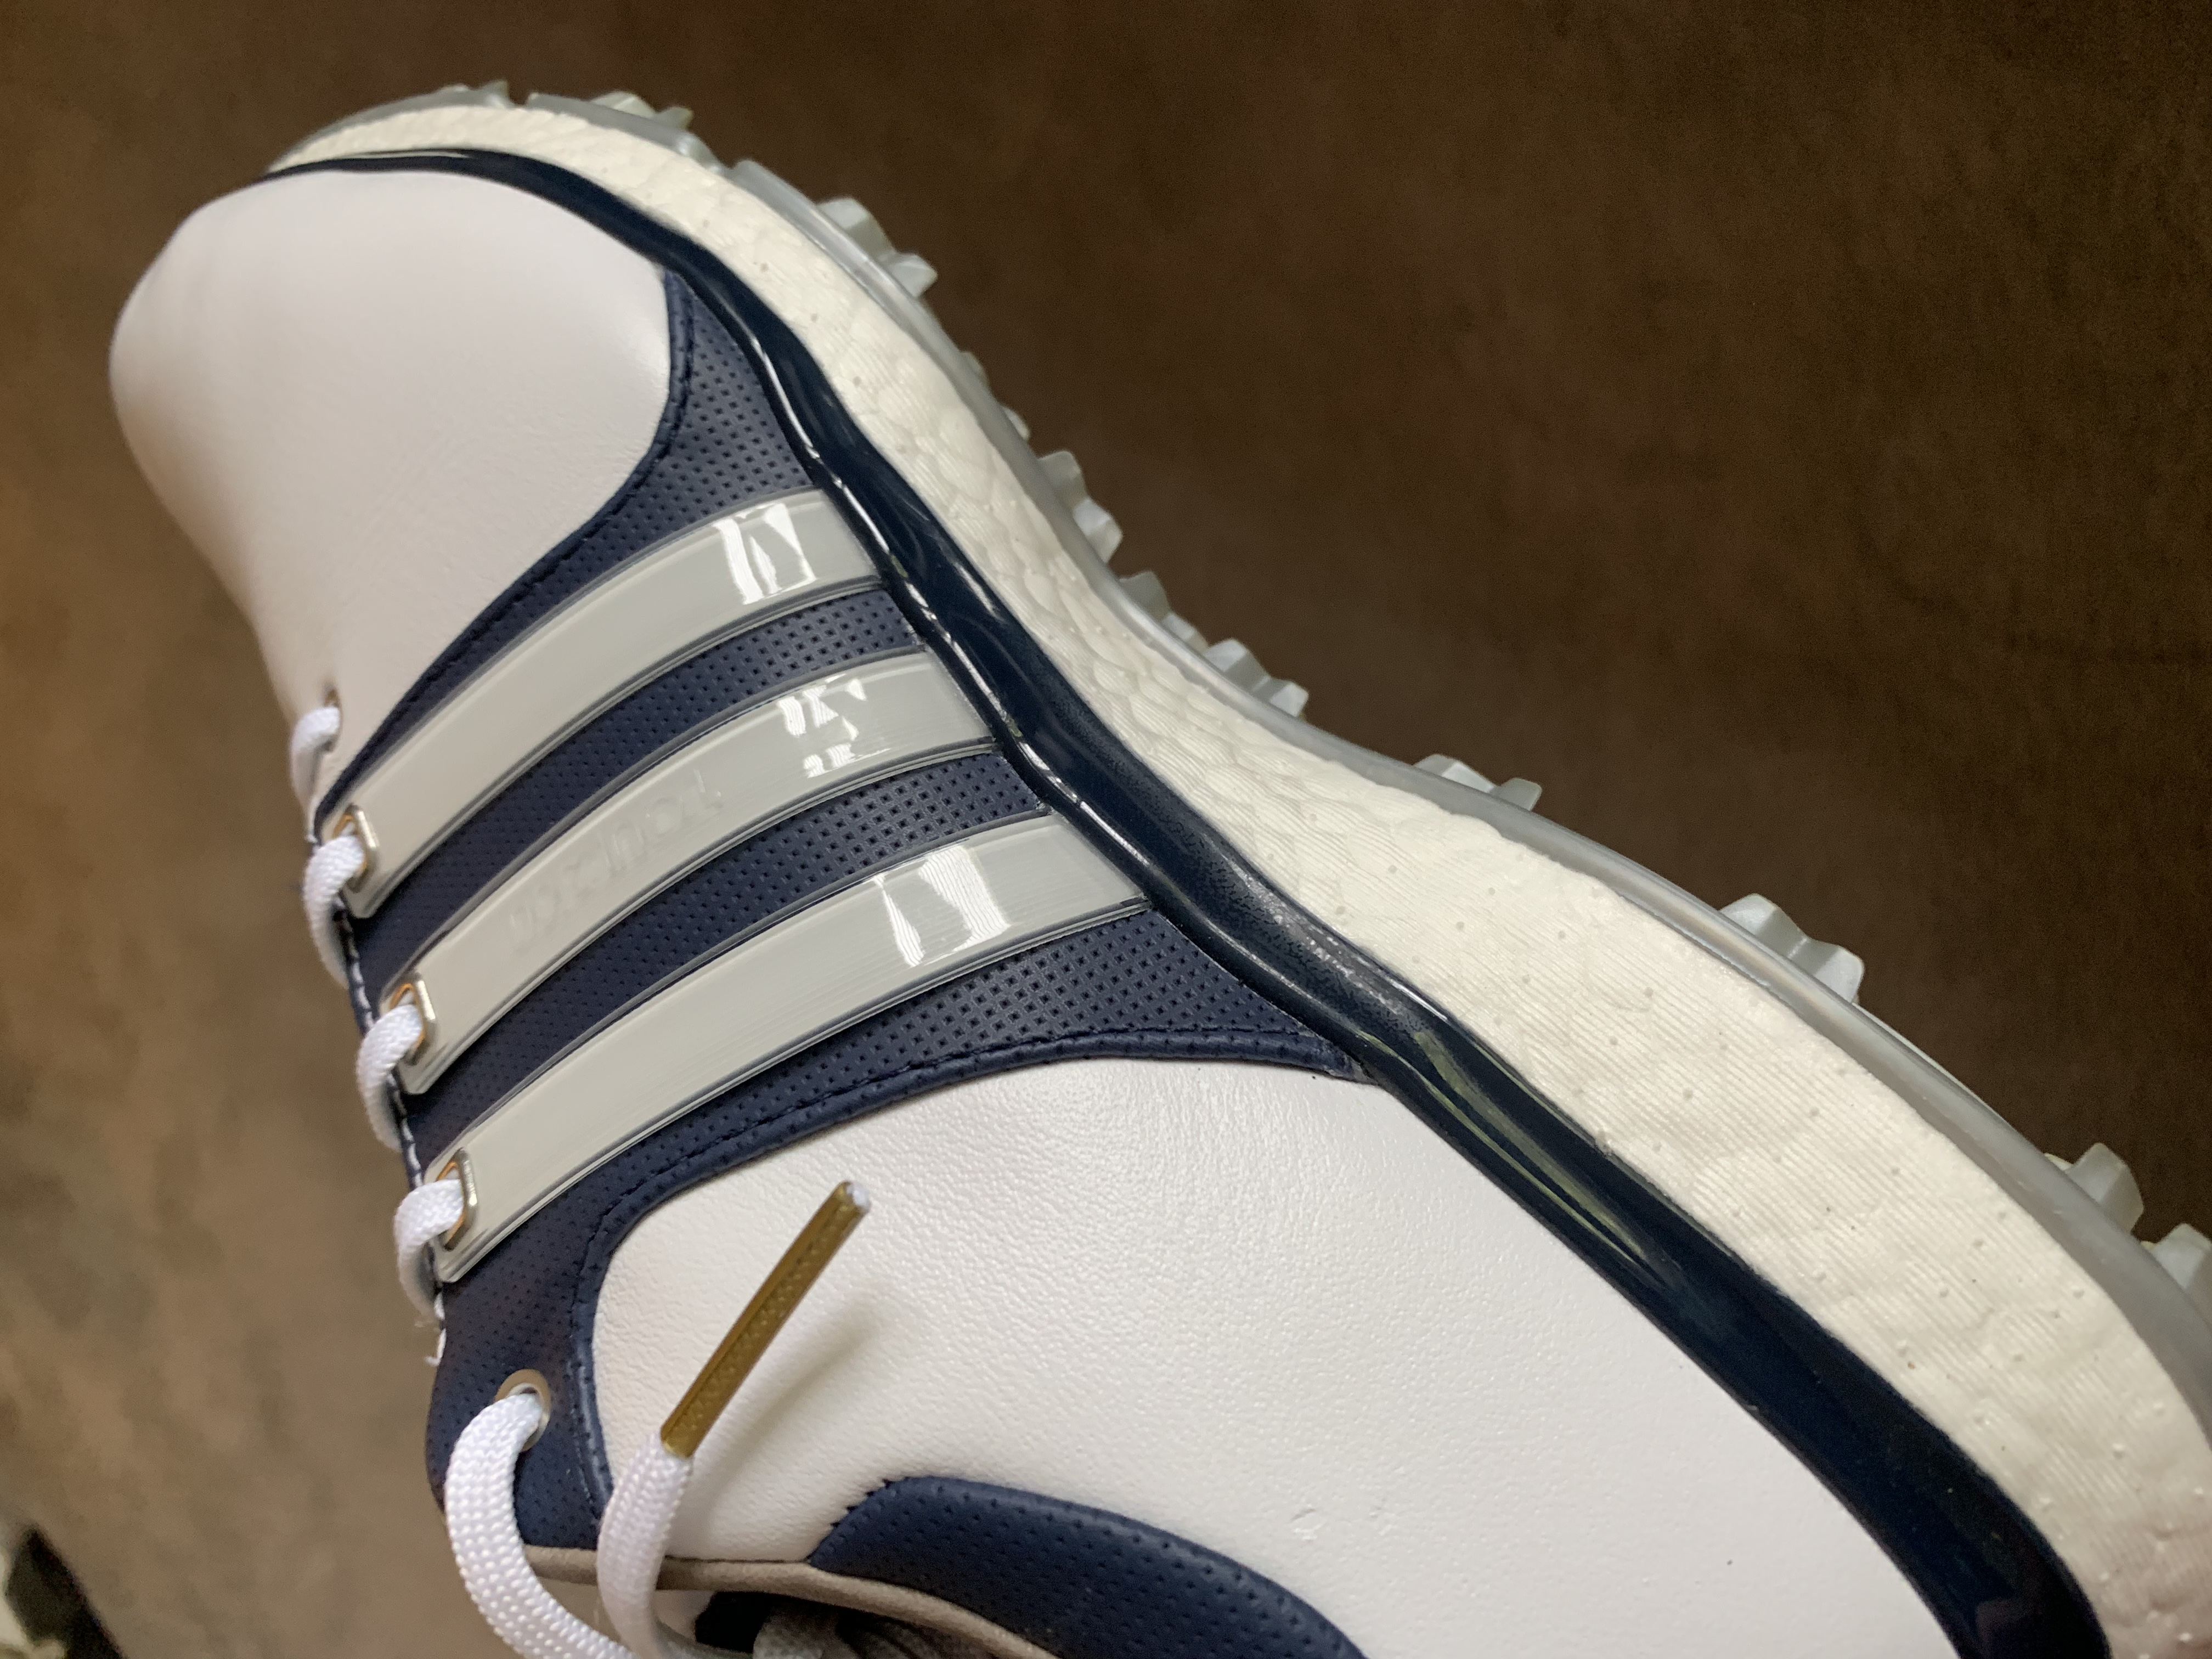 Adidas 360 XT-SL UK9 Wide, Golf Clubs For Sale Wanted UK